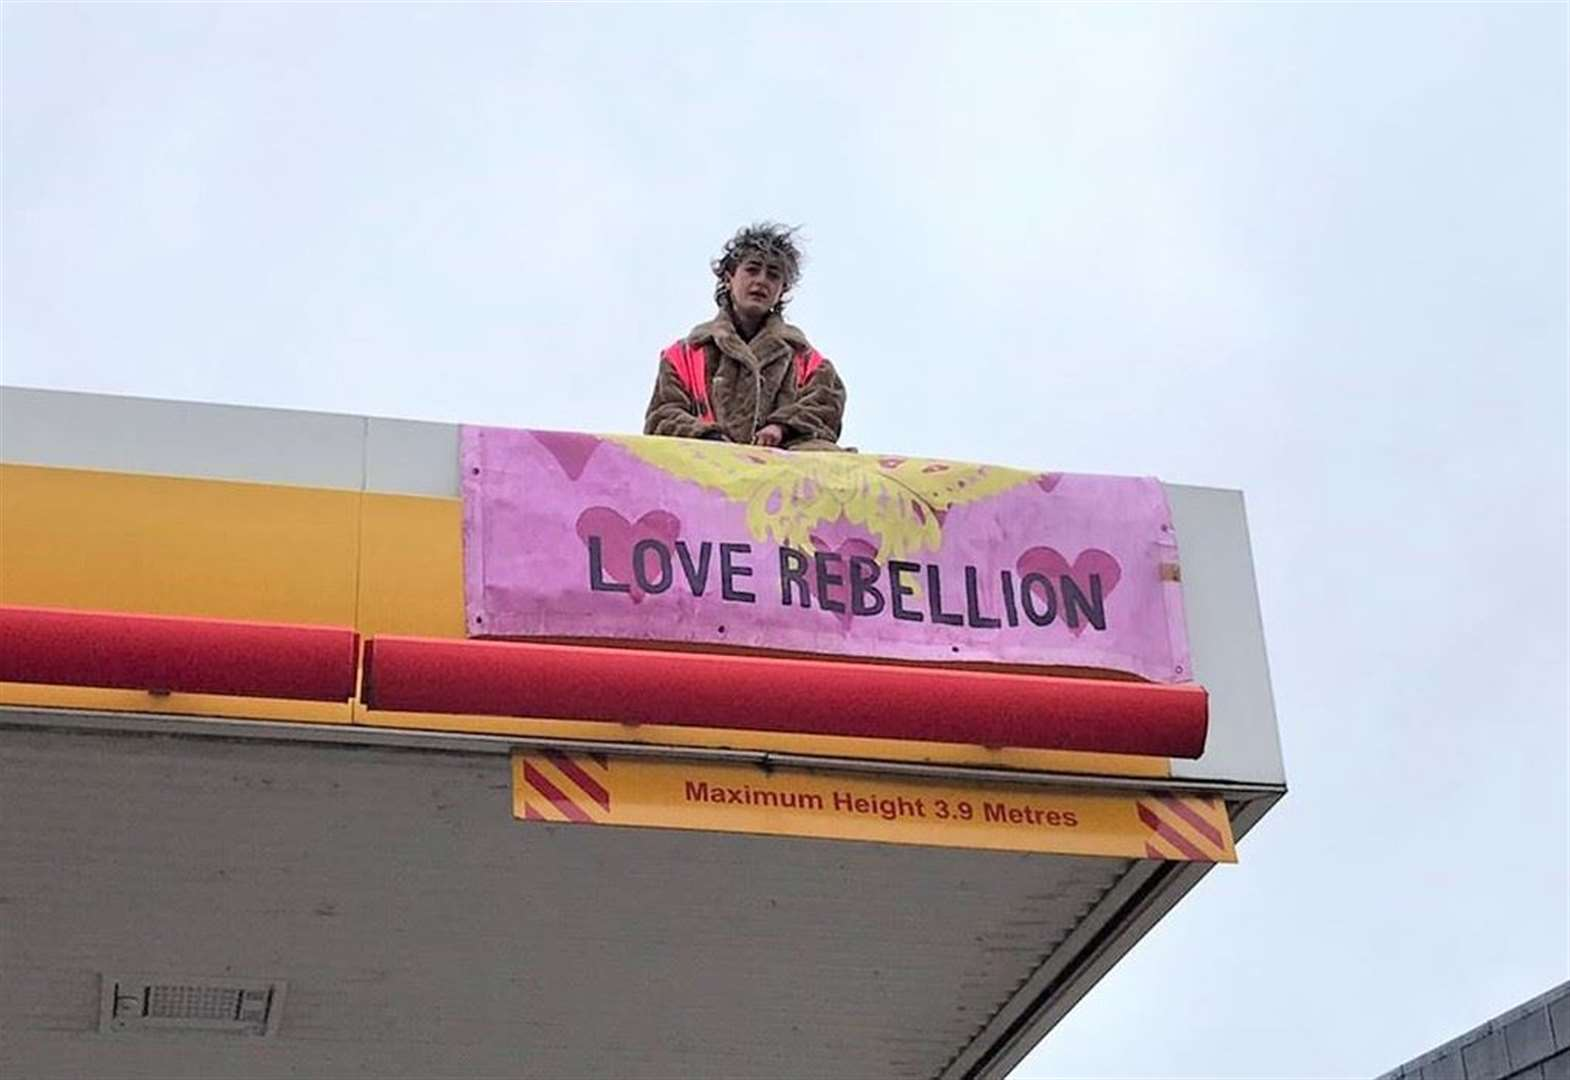 Extinction Rebellion Cambridge Youth members climb on to canopy at Shell garage in latest protest